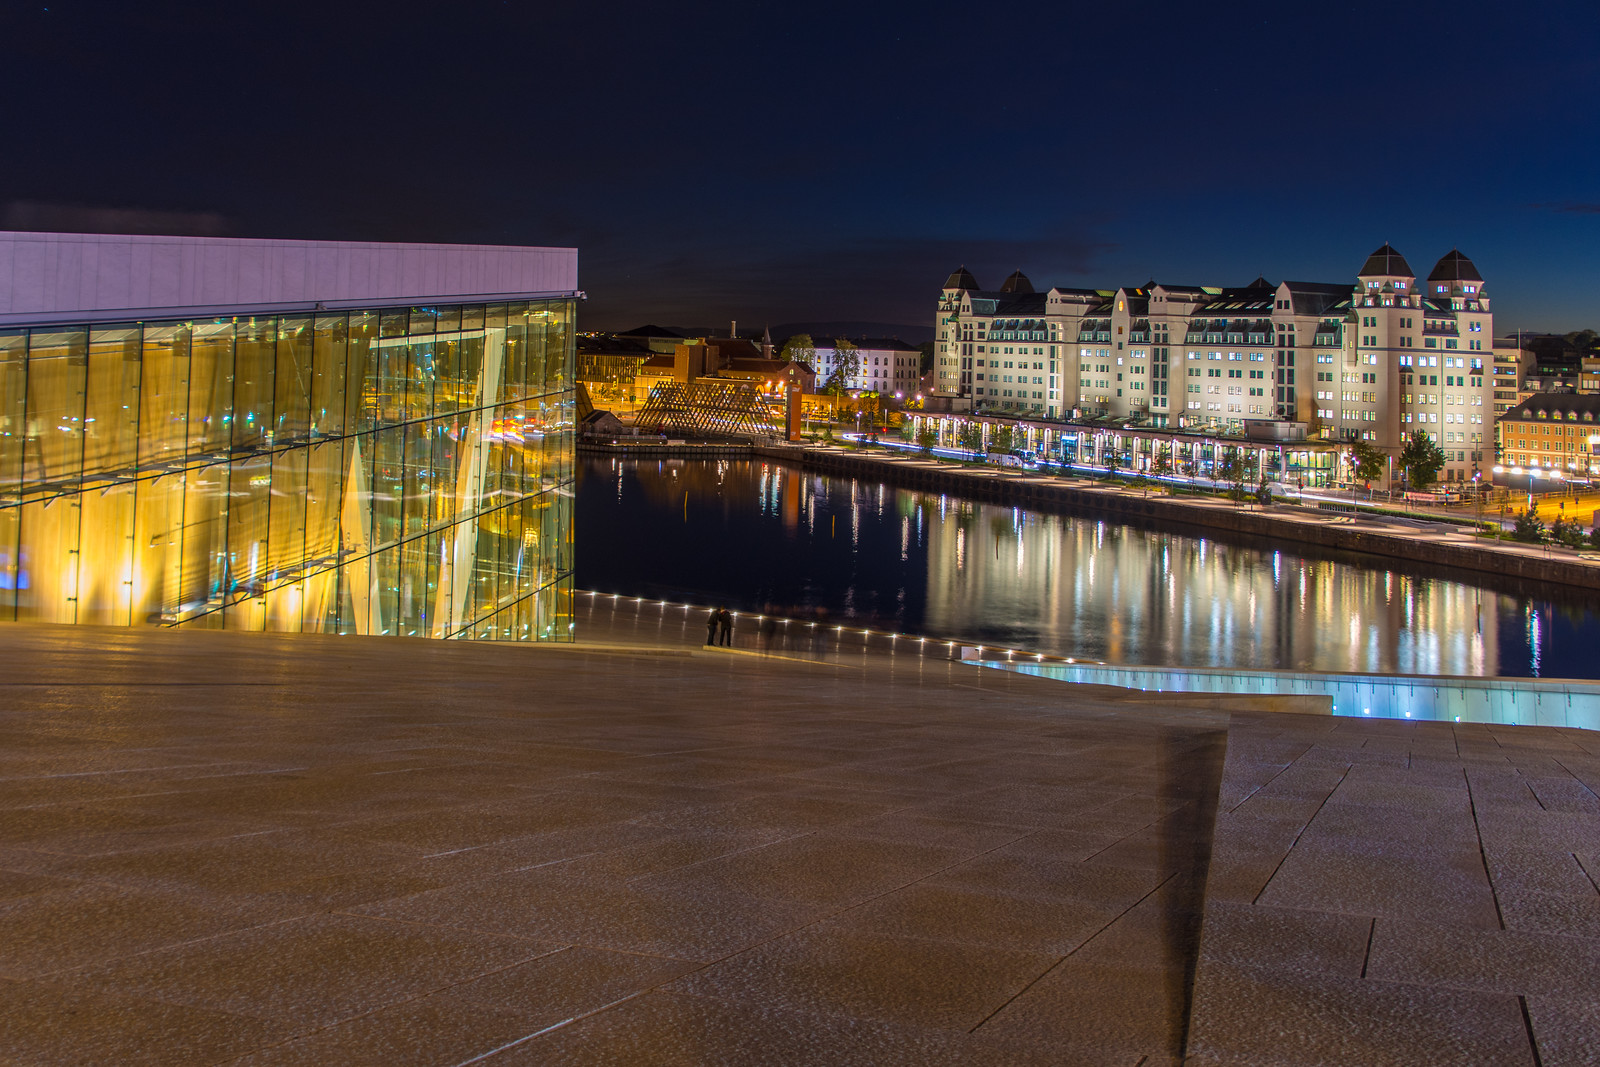 On the roof of the Oslo Opera House